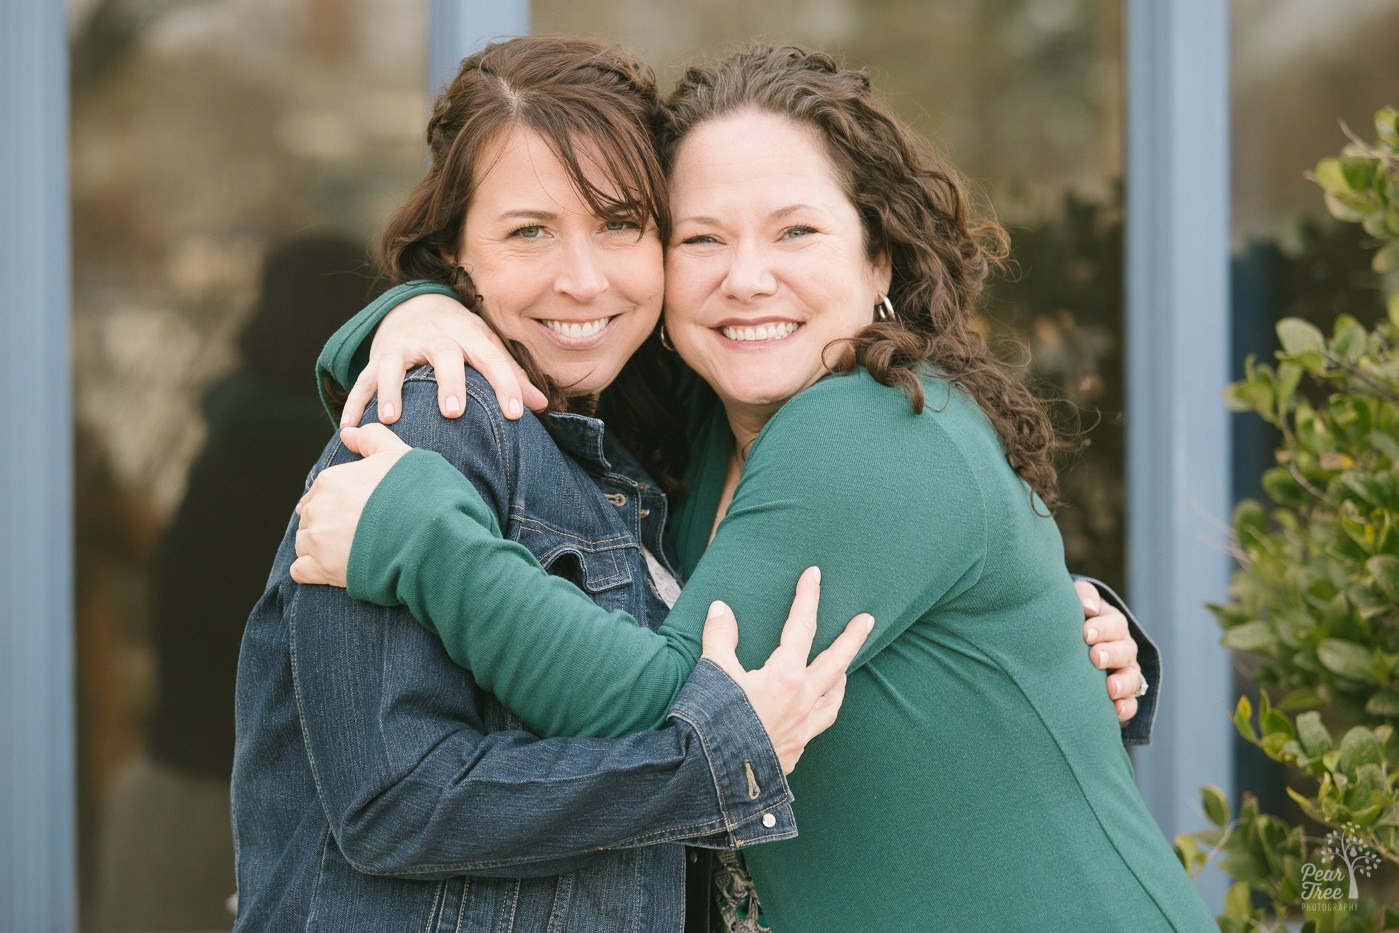 Two brunette best friends hugging each other and smiling.